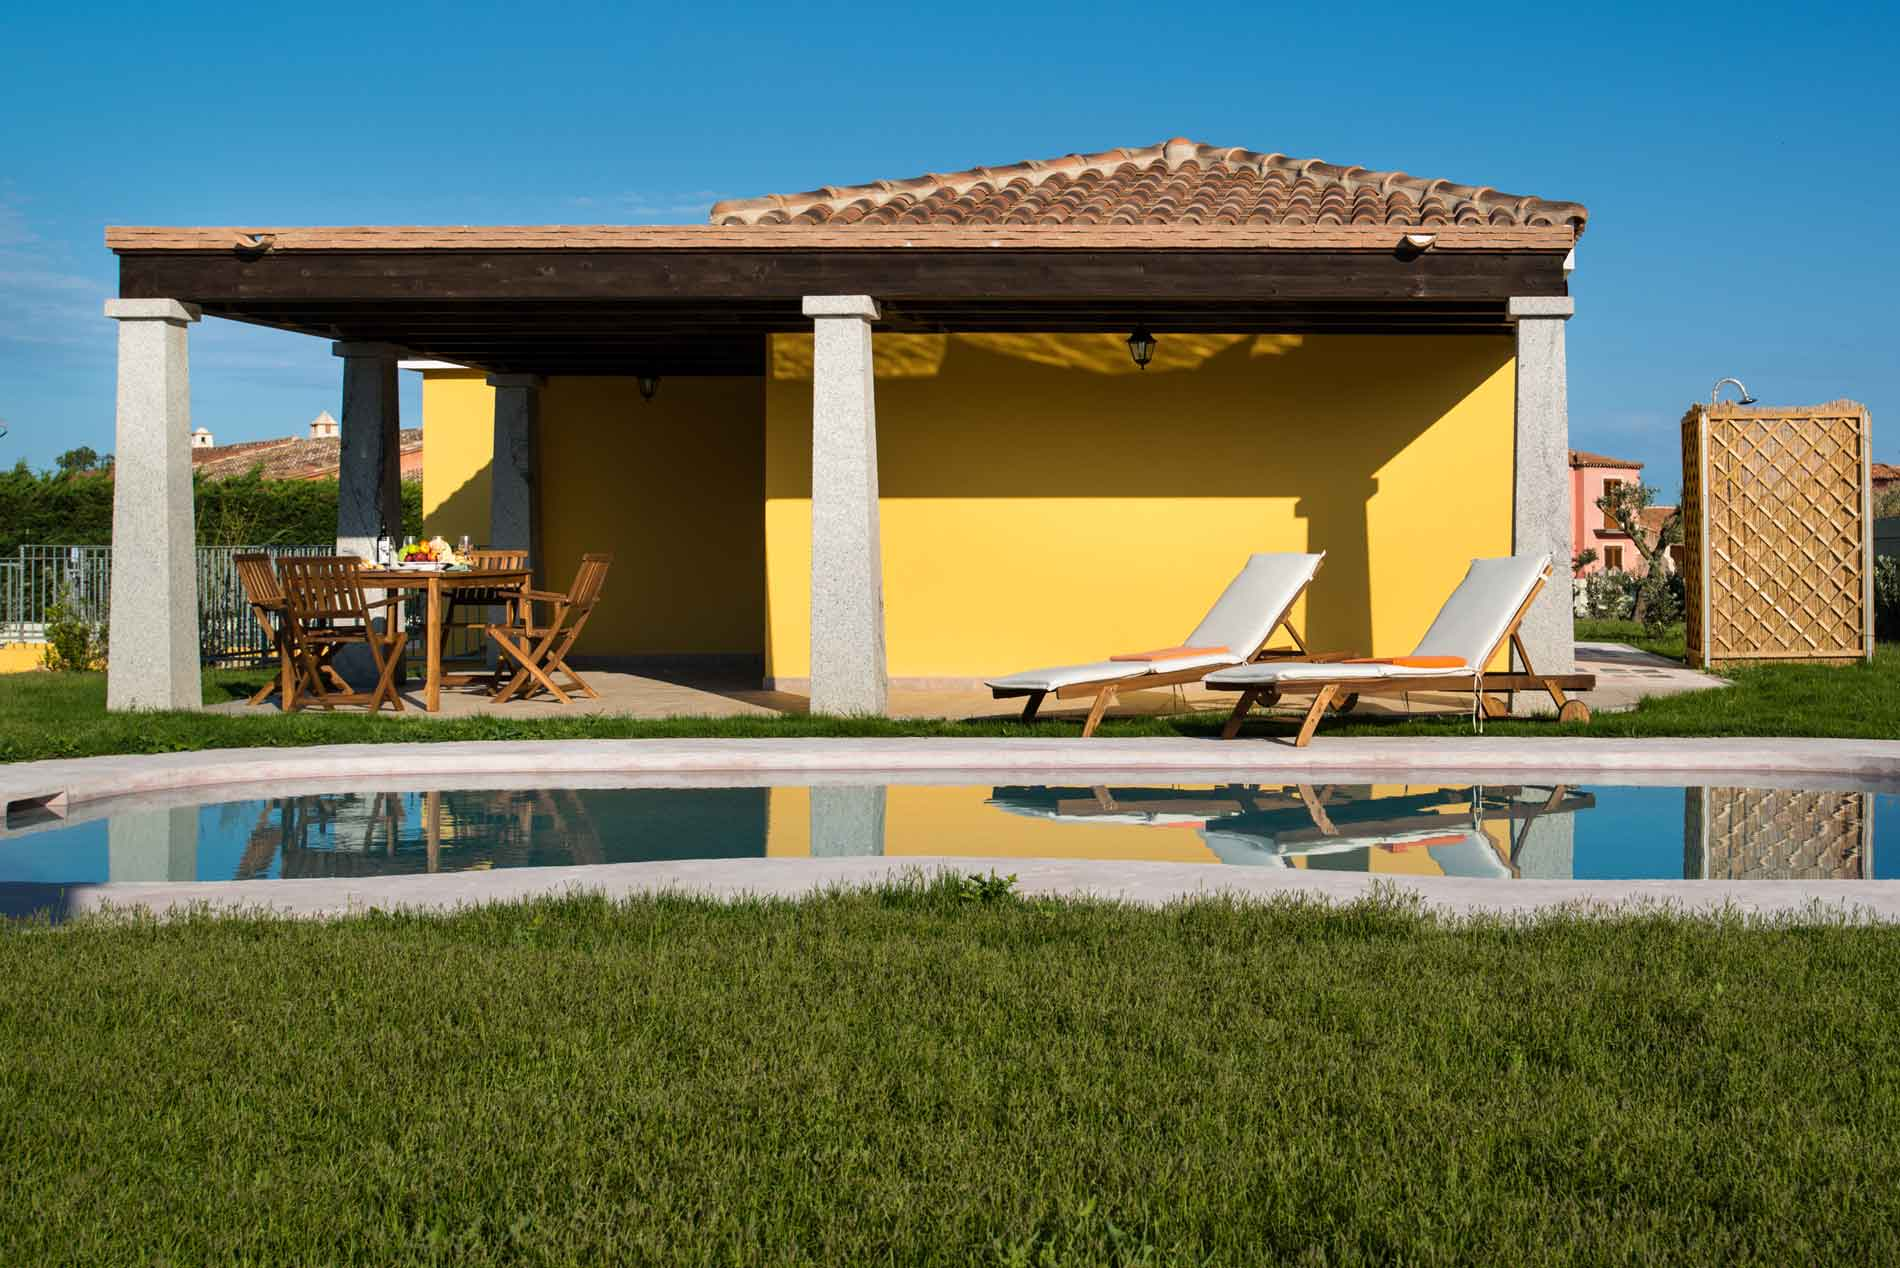 Holidays Villas Villa B2 Villas Resort Tertenia Luxury Holidaysluxury Holidays